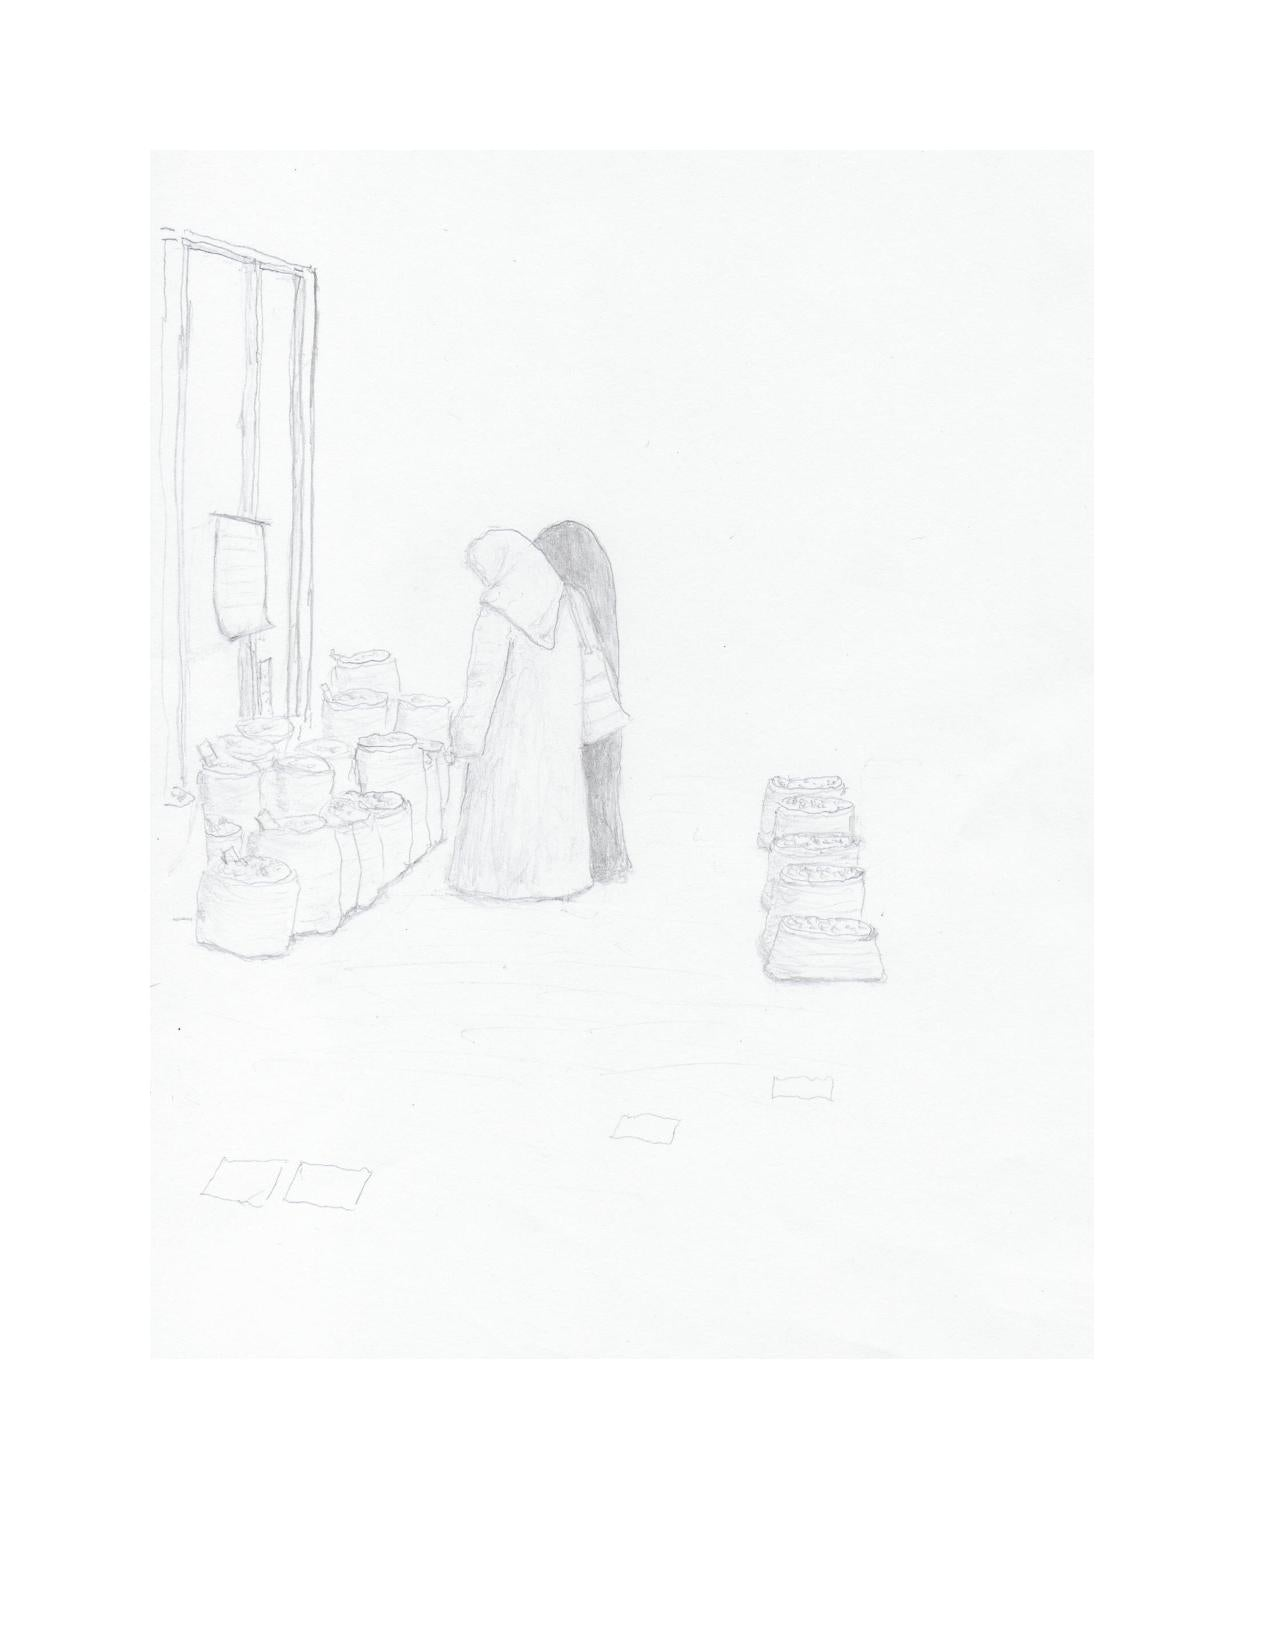 FREE Pencil Sketch From Alexandra Forever 2291 - Book One: Bazaar At The Temple